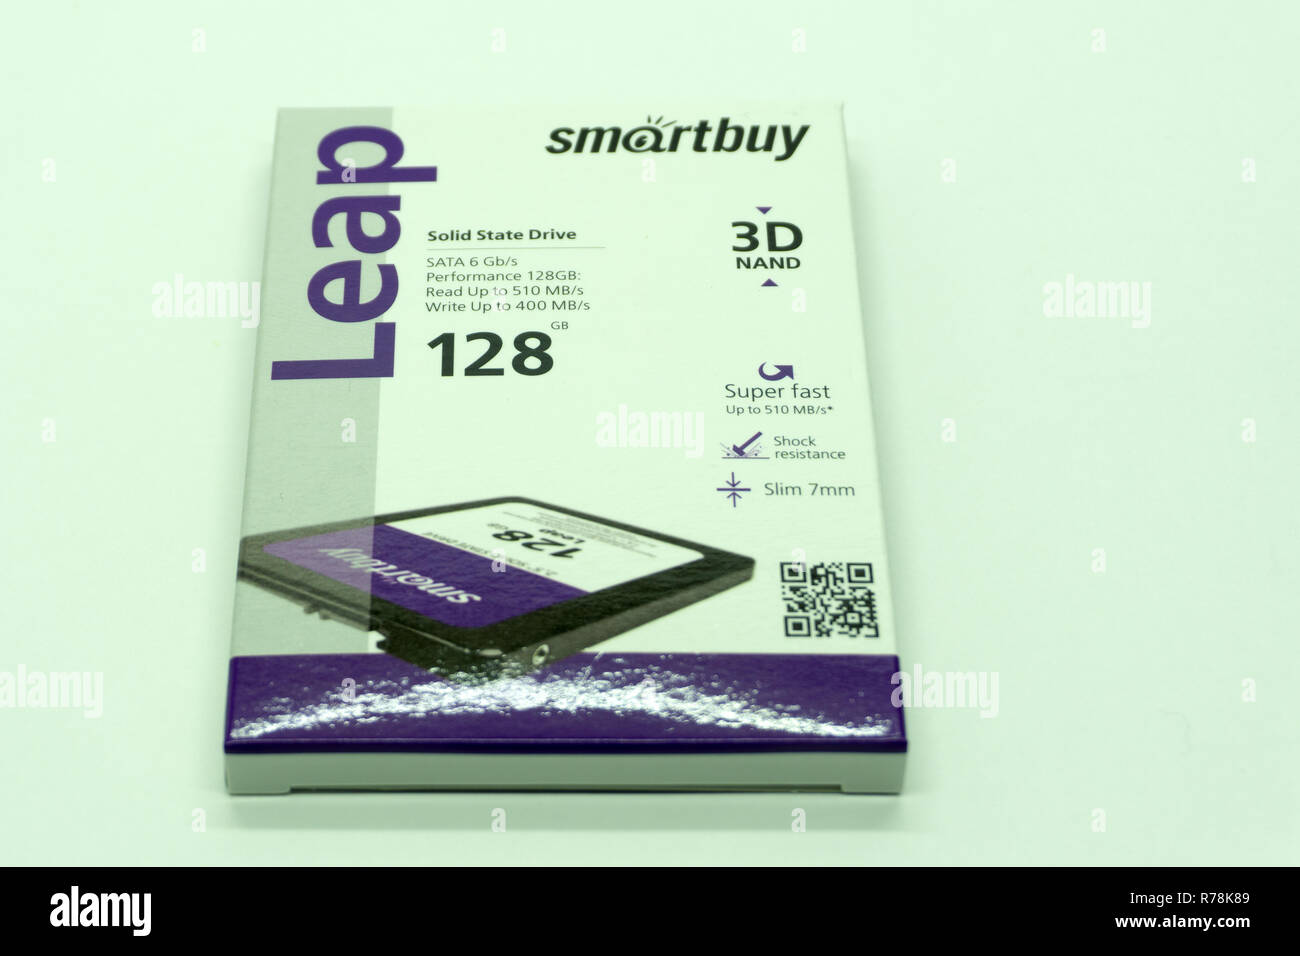 SSD smartbay, storage devices using data recording, Russia Berezniki 13 Nov 2018 - Stock Image